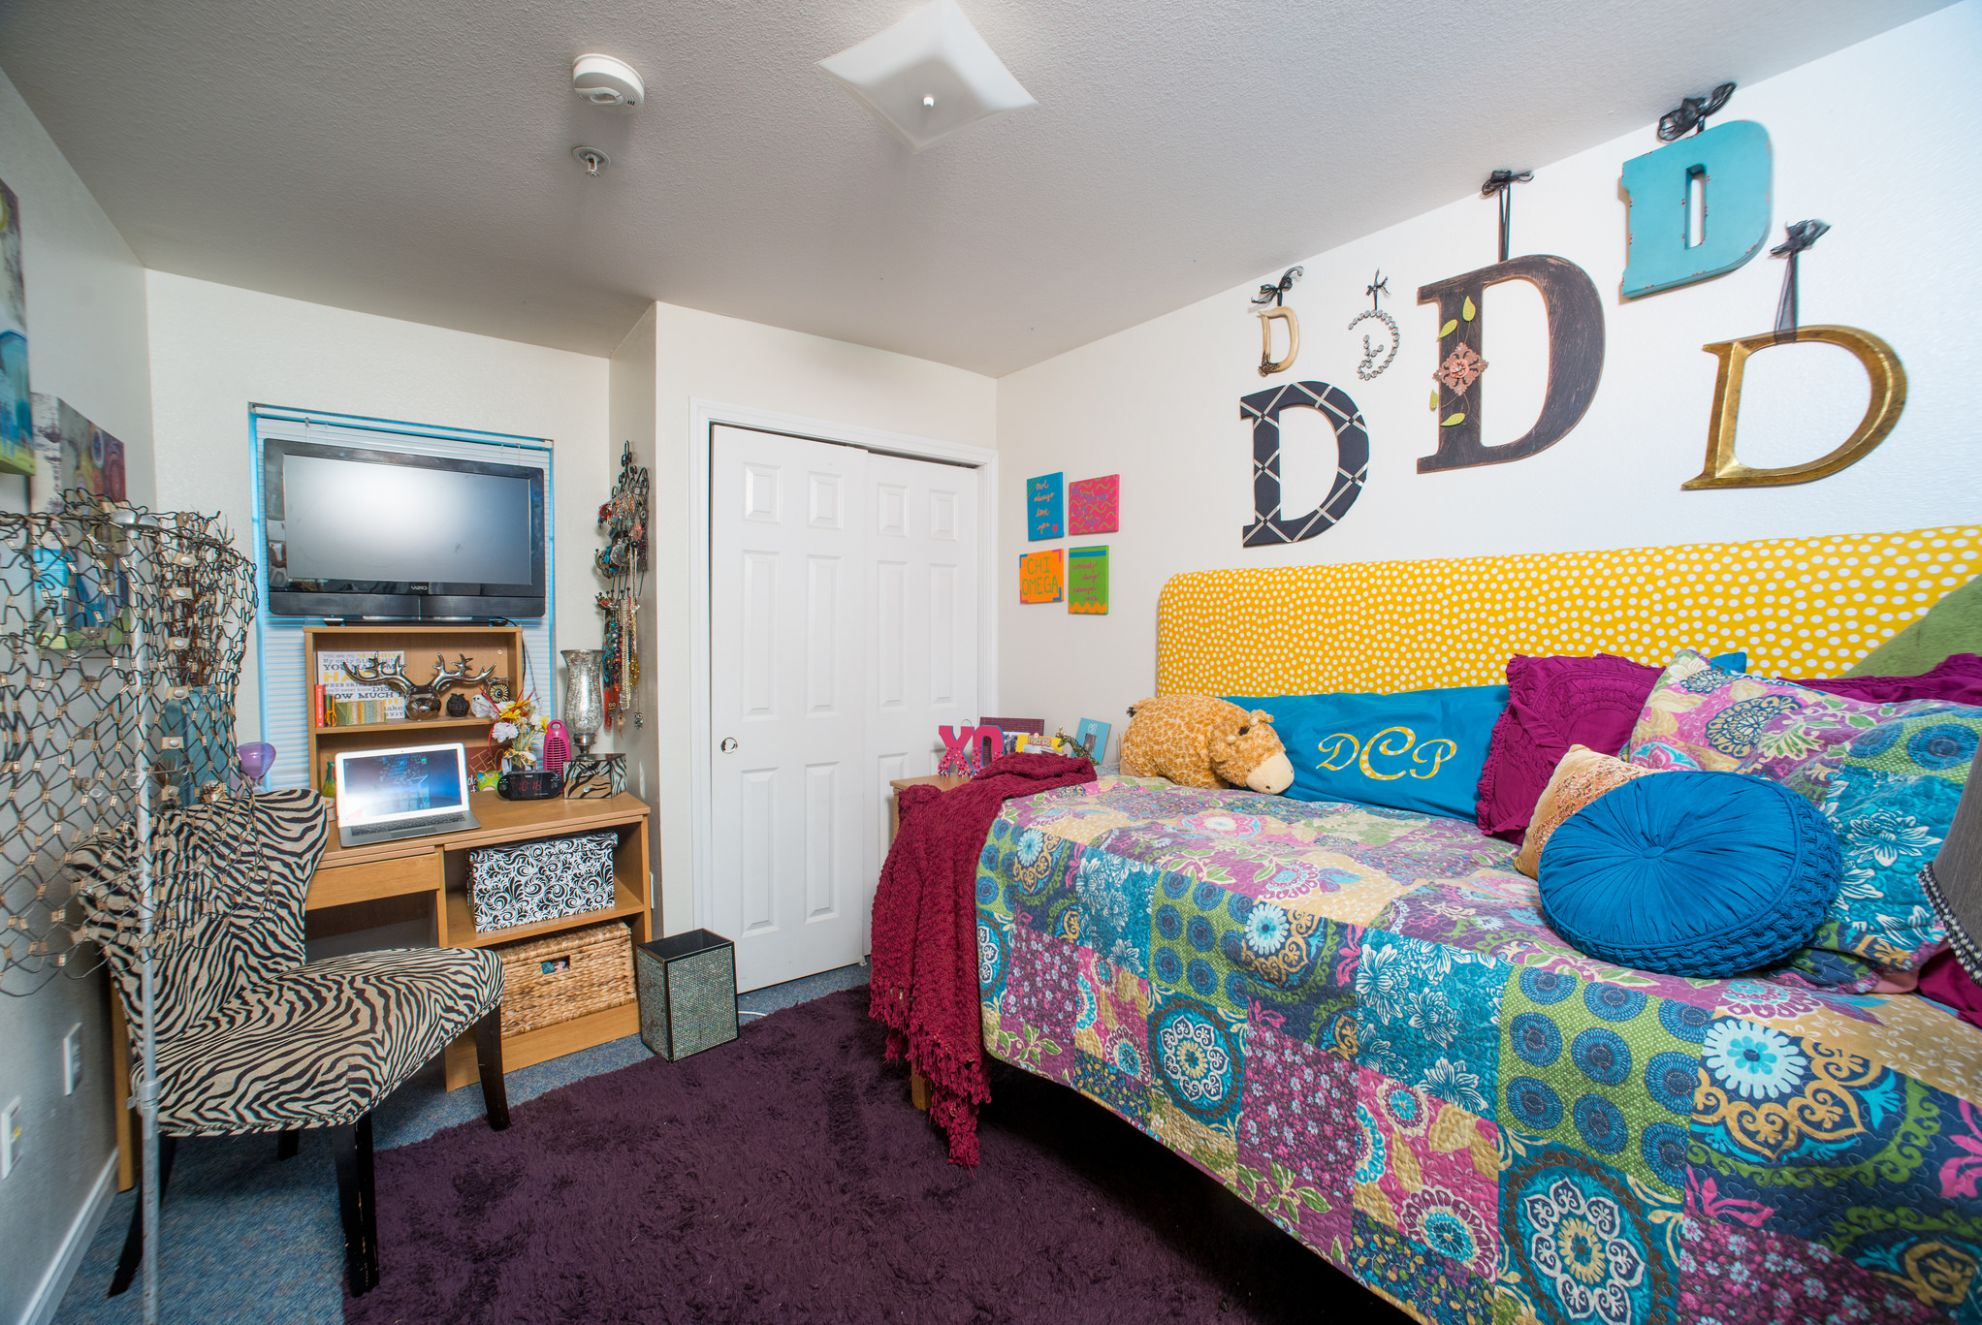 11 Inexpensive dorm decor items you'll want to steal for your own ...